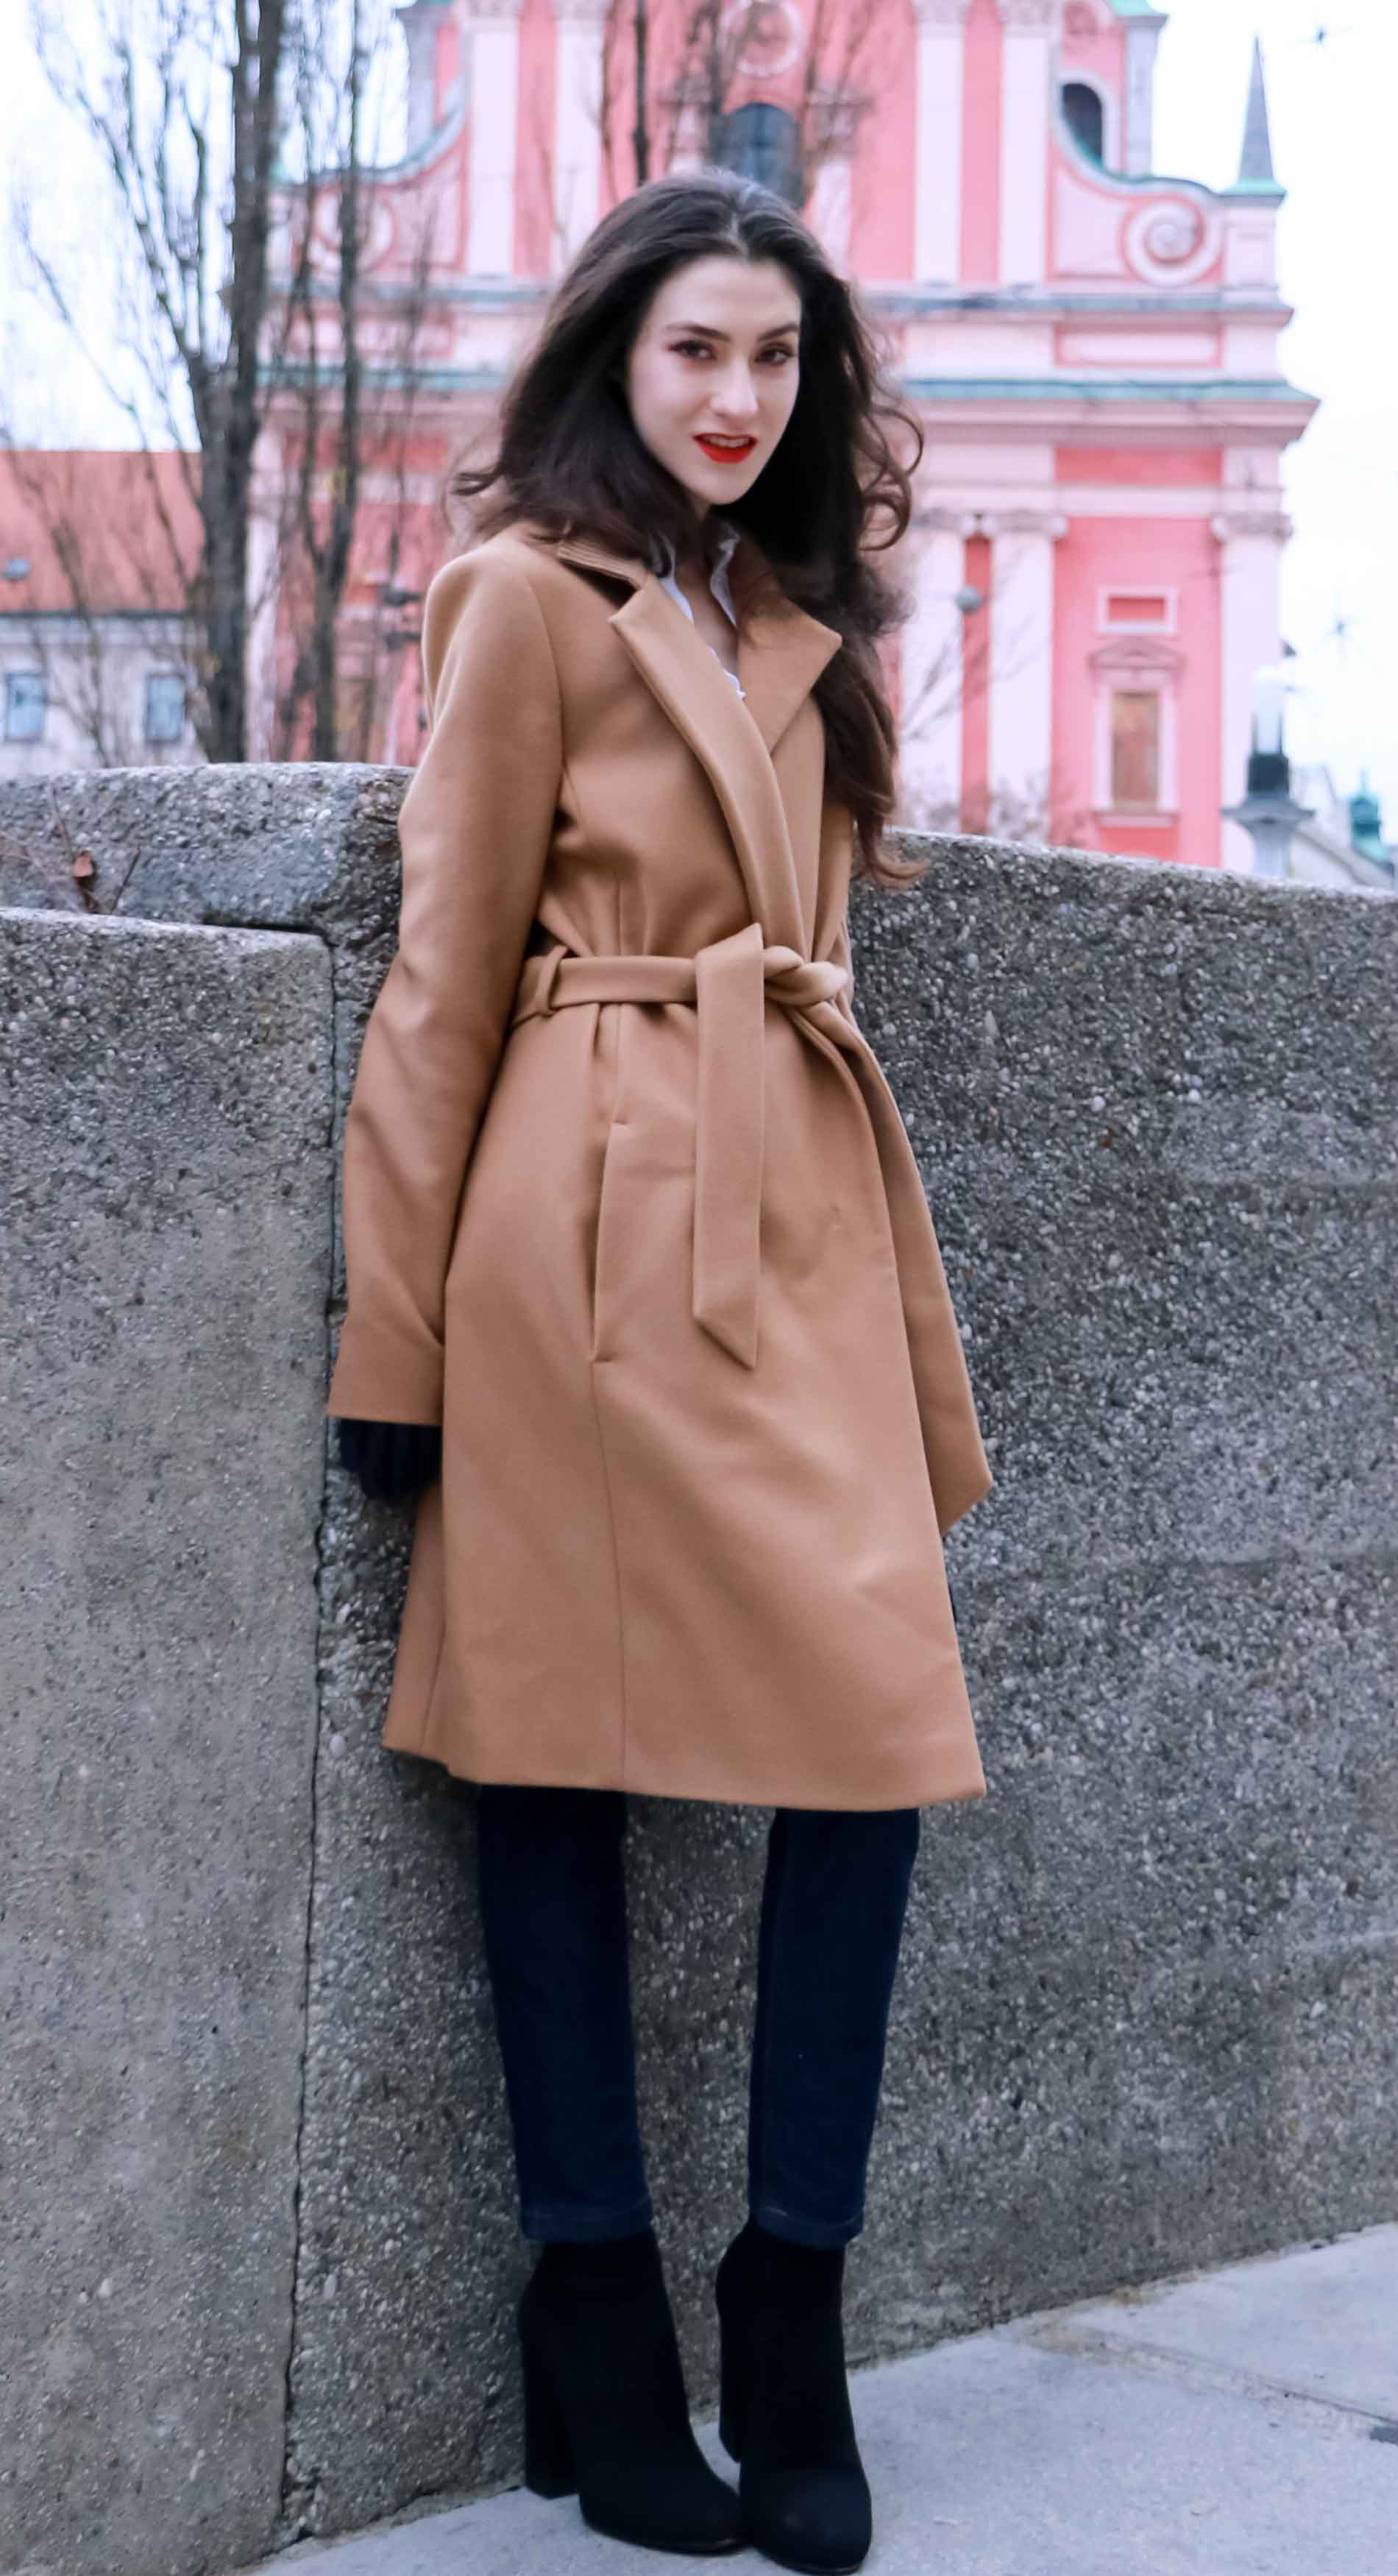 Fashion Blogger Veronika Lipar of Brunette from Wall Street dressed in camel wrap coat from Escada, tapered dark denim jeans from A.P.C., small black top handle bag, blue leather gloves and red lipstick, business casual outfit for work, while standing on the street in Ljubljana